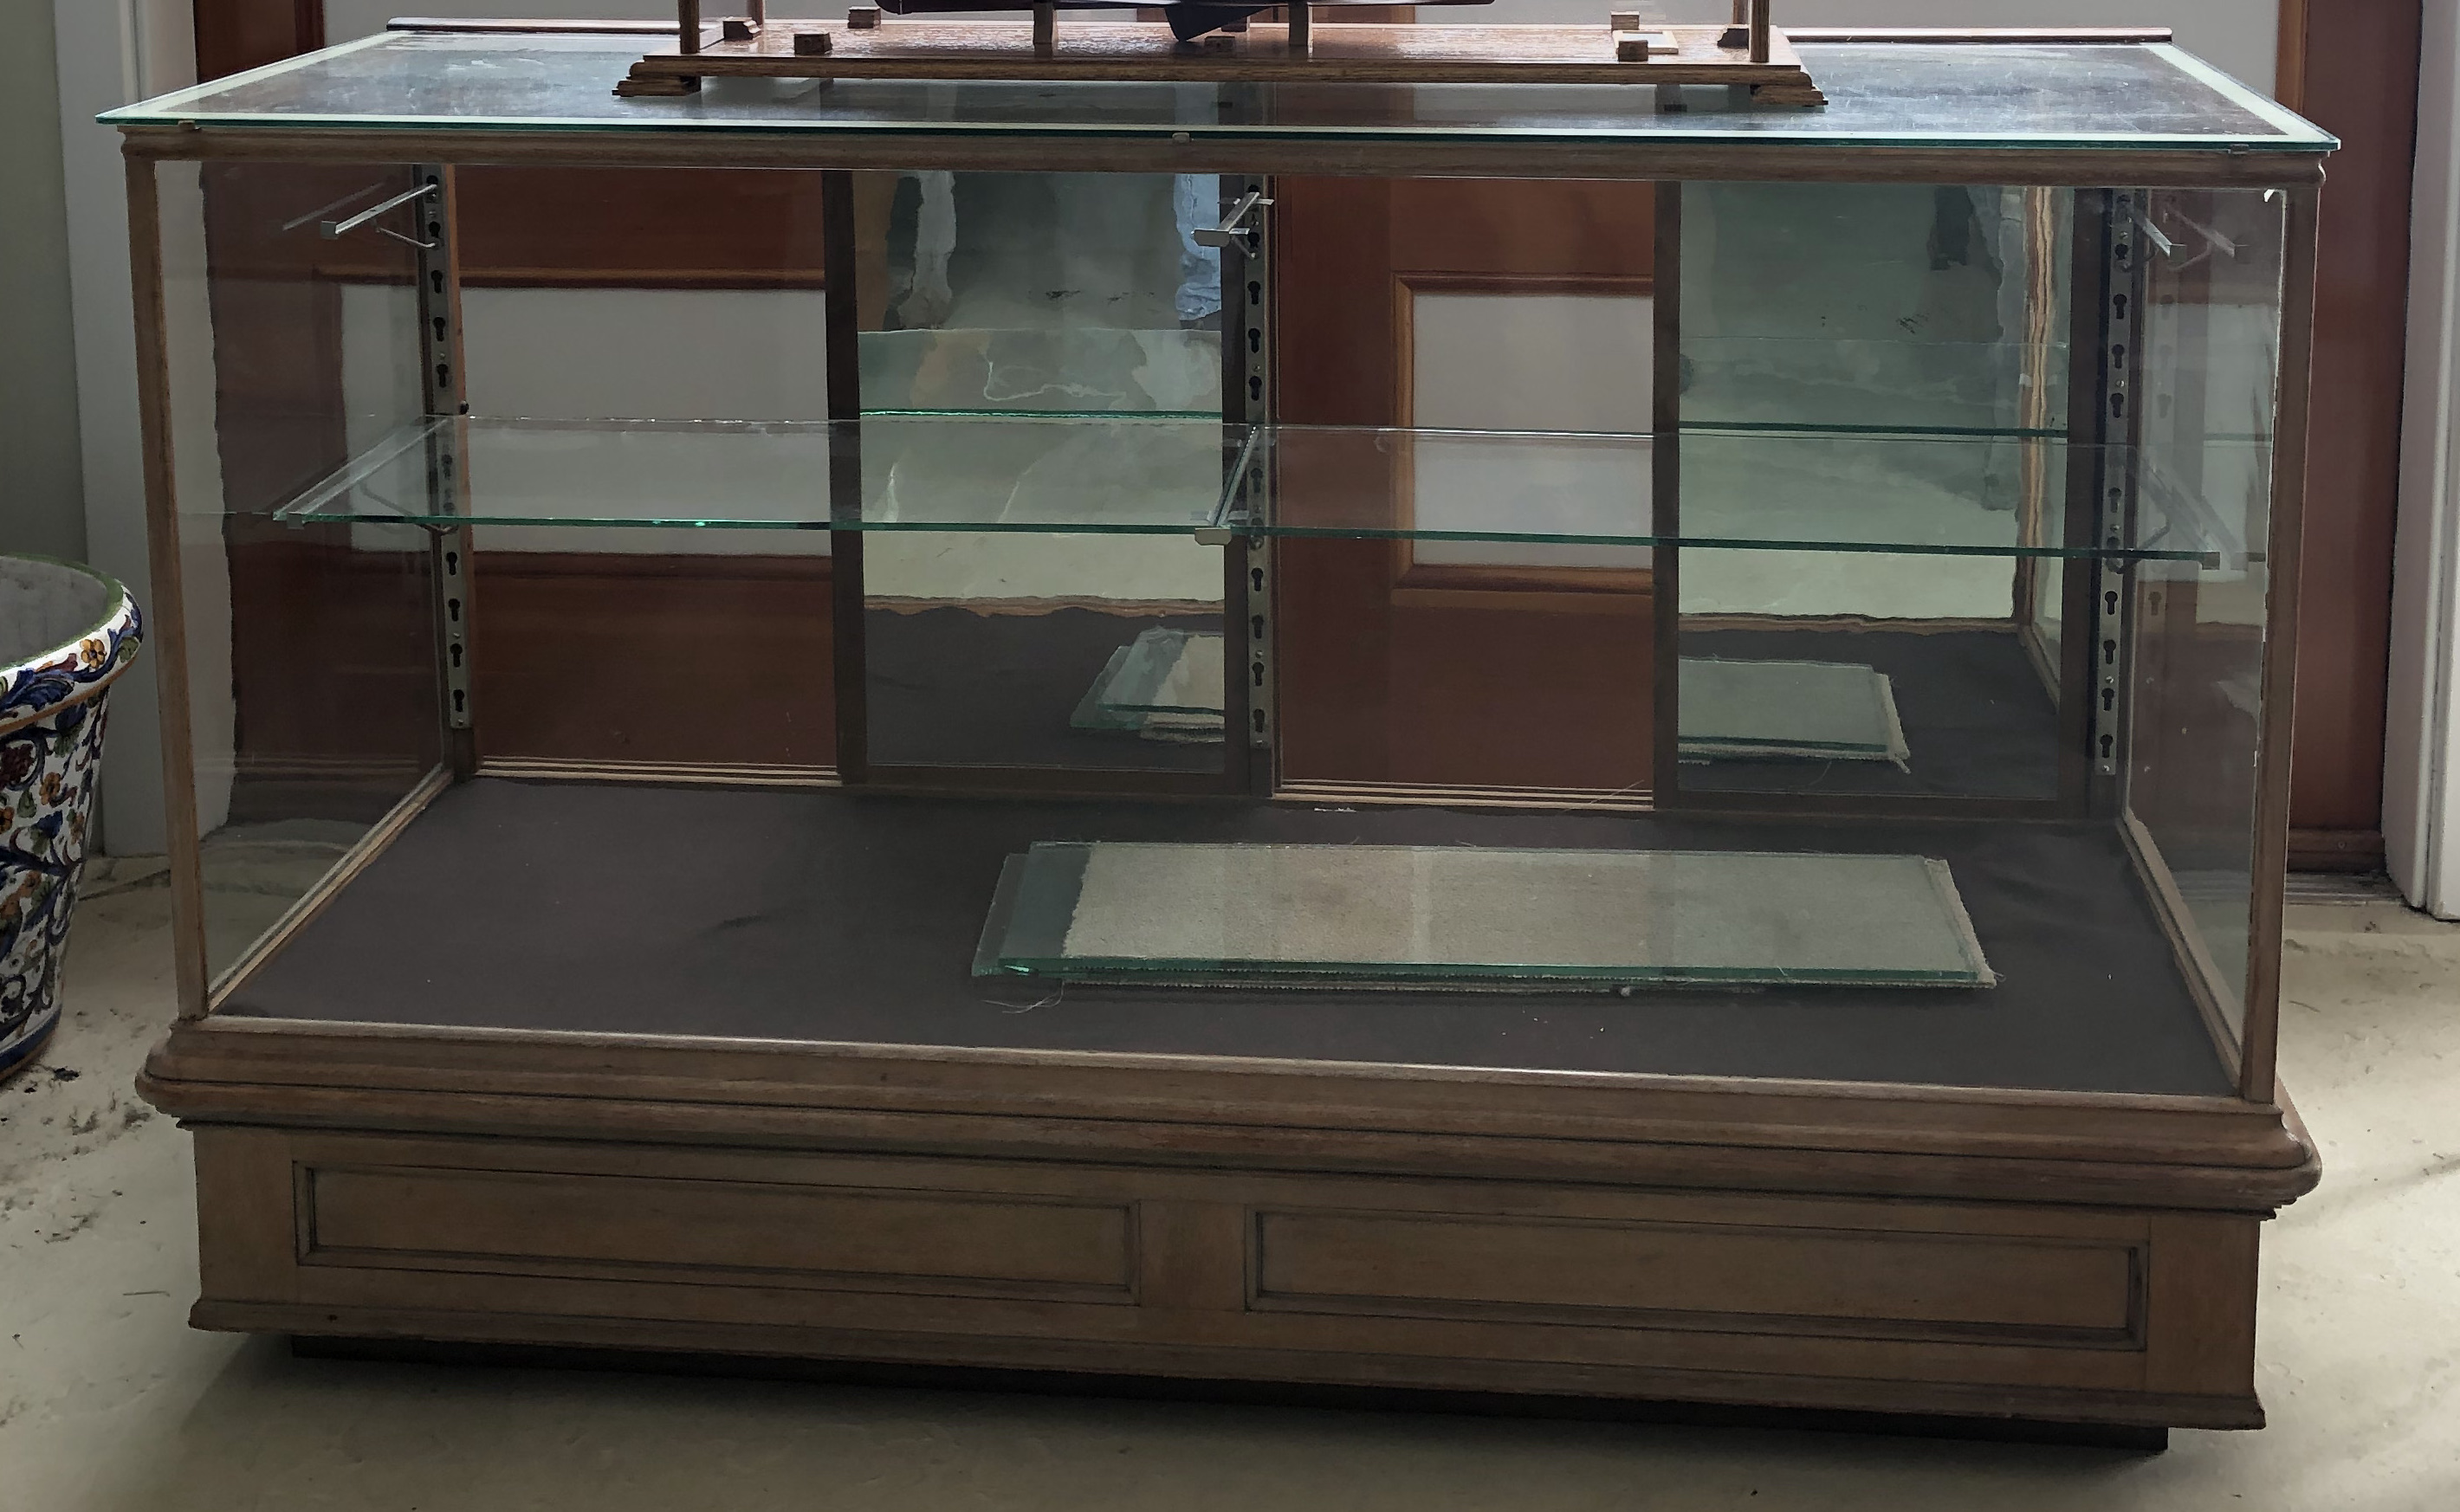 Display Case with adjustable shelves